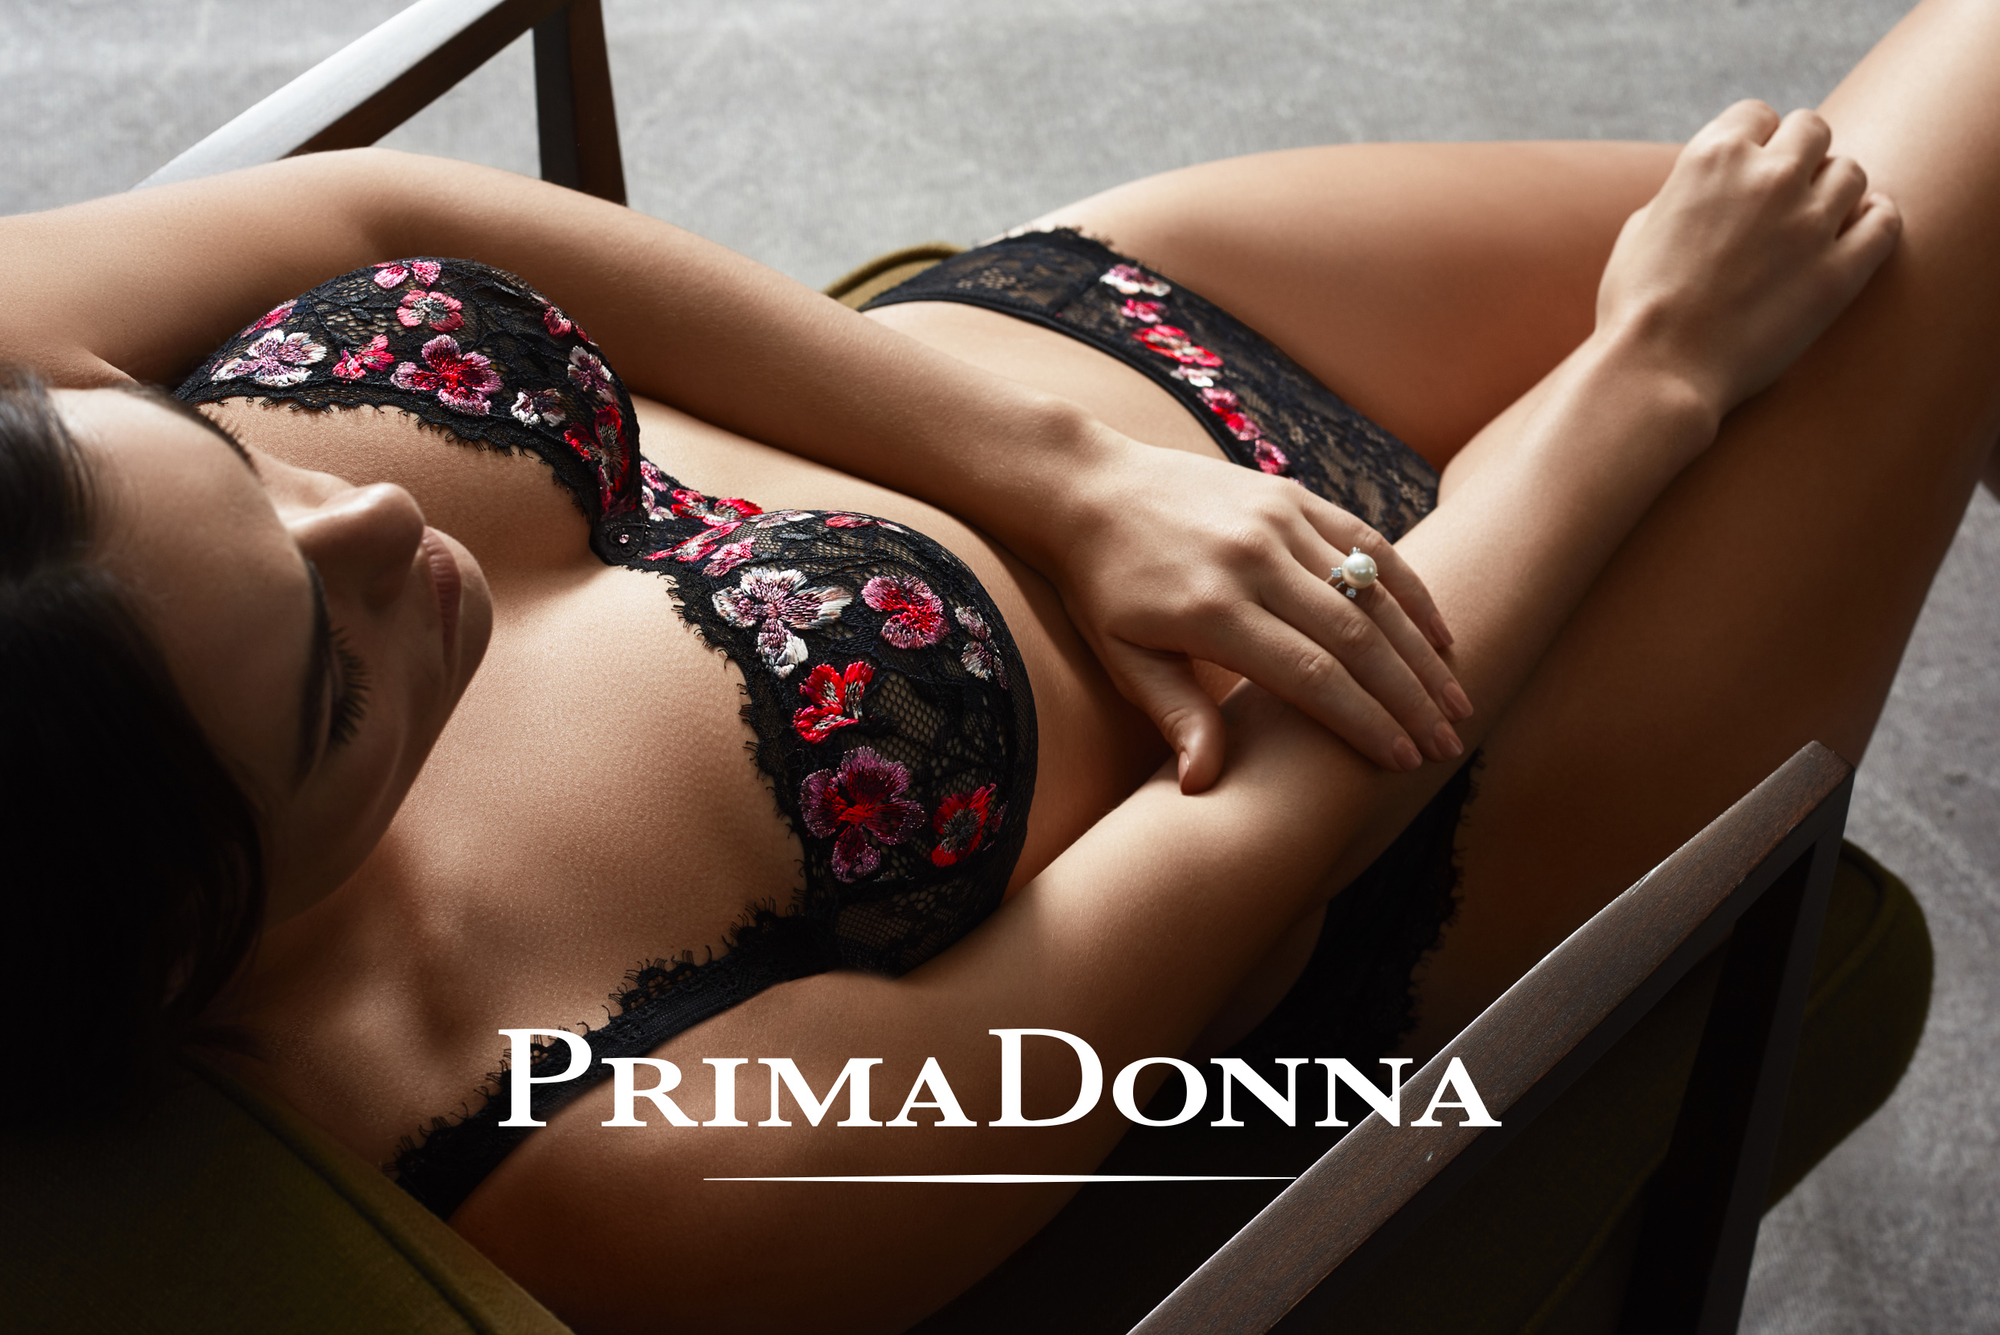 Prima Donna Deauville - New Beginnings Intimate Apparel - Brandon, Manitoba